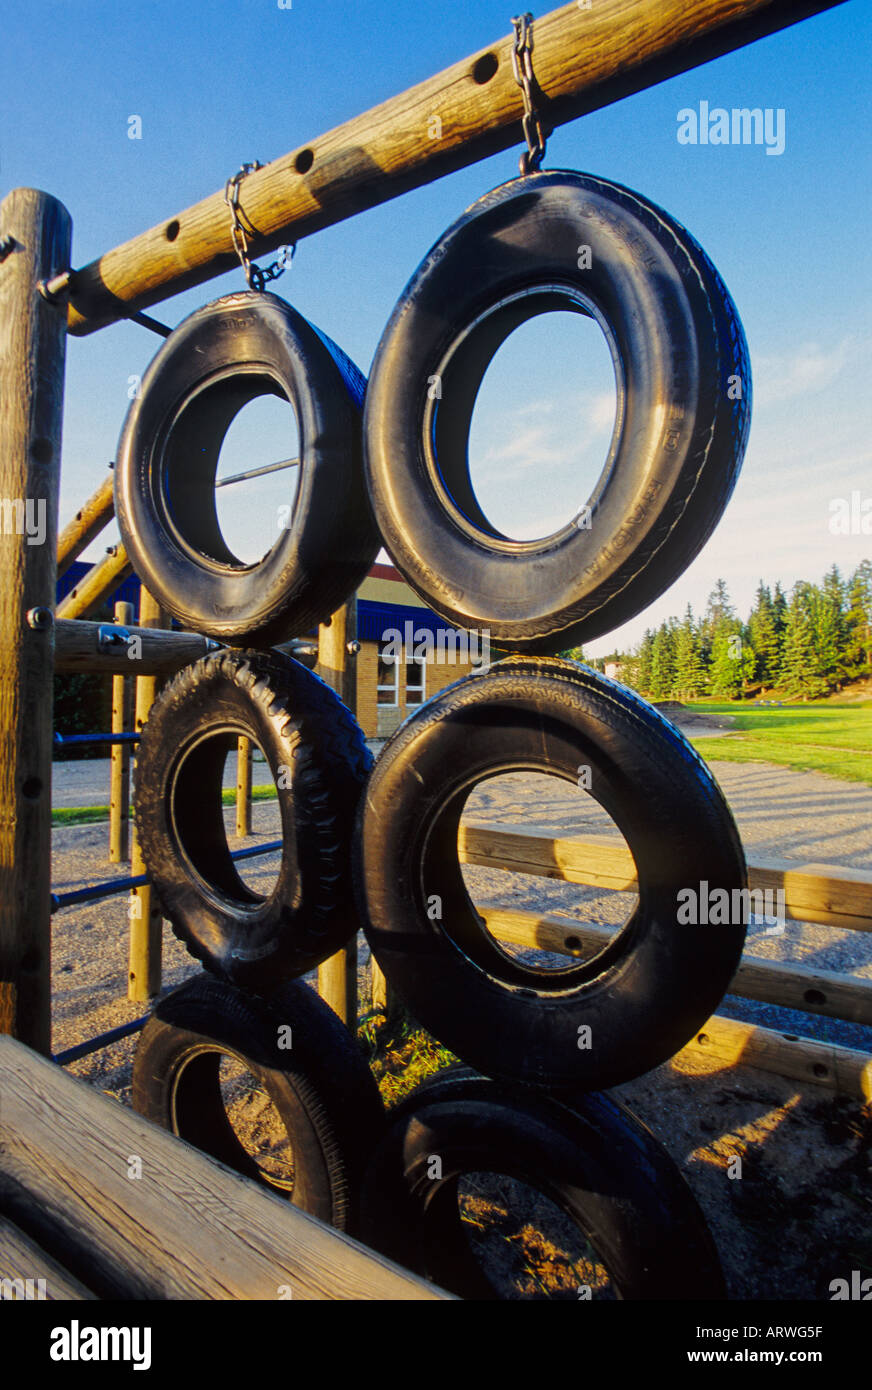 Car tires in a children's playground - Stock Image